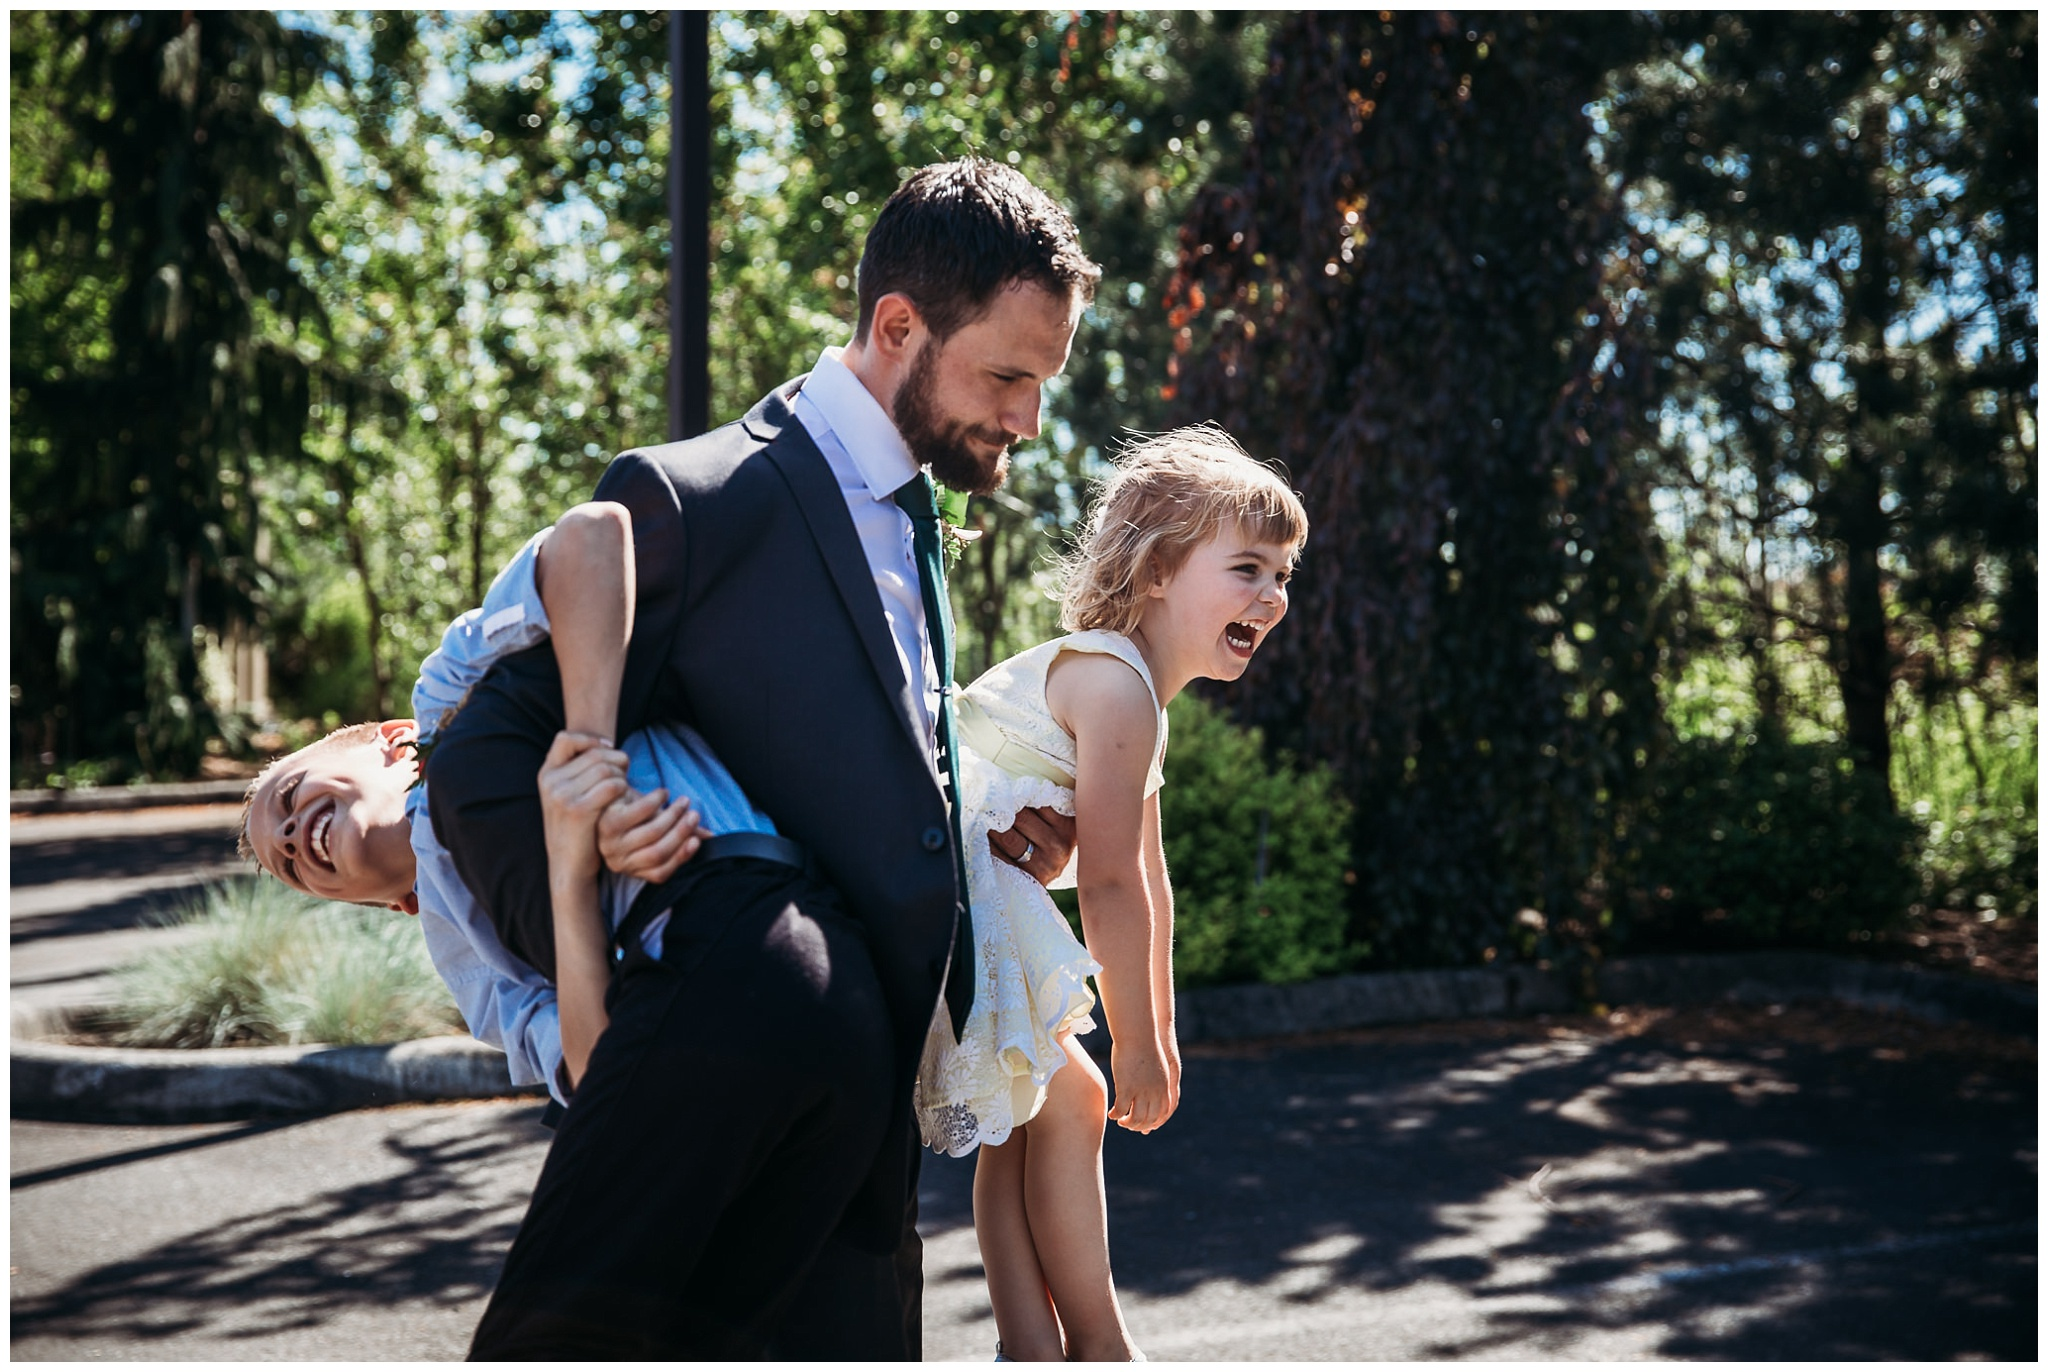 Aldergrove Canadian Reformed Church Wedding Photographer Christian Romantic Candid Documentary Moody_0034.jpg